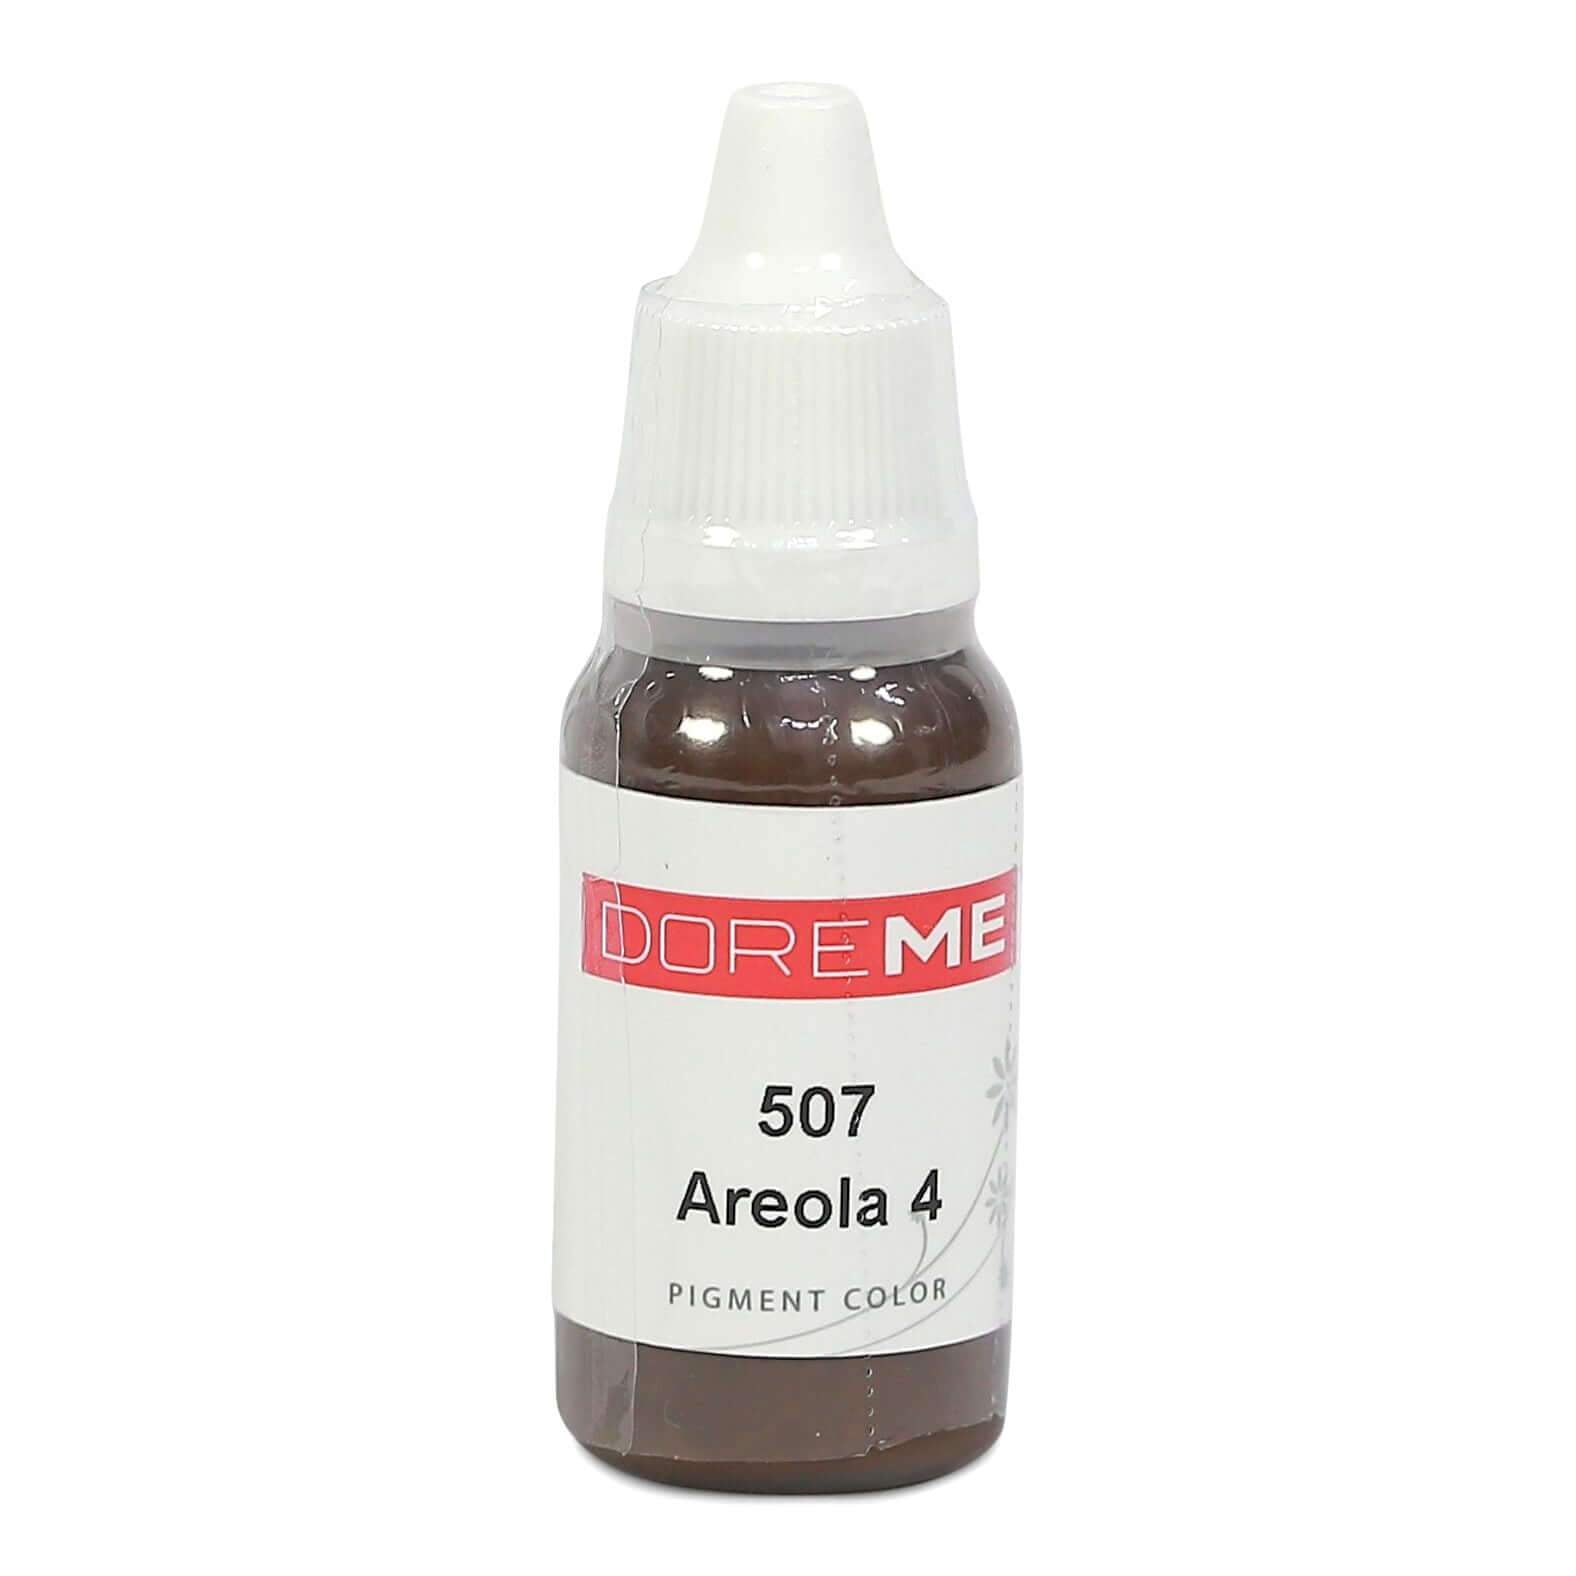 Doreme Areola Tattoo Pigments 507 Areola 4 (c) - Beautiful Ink UK trade and wholesale supplier